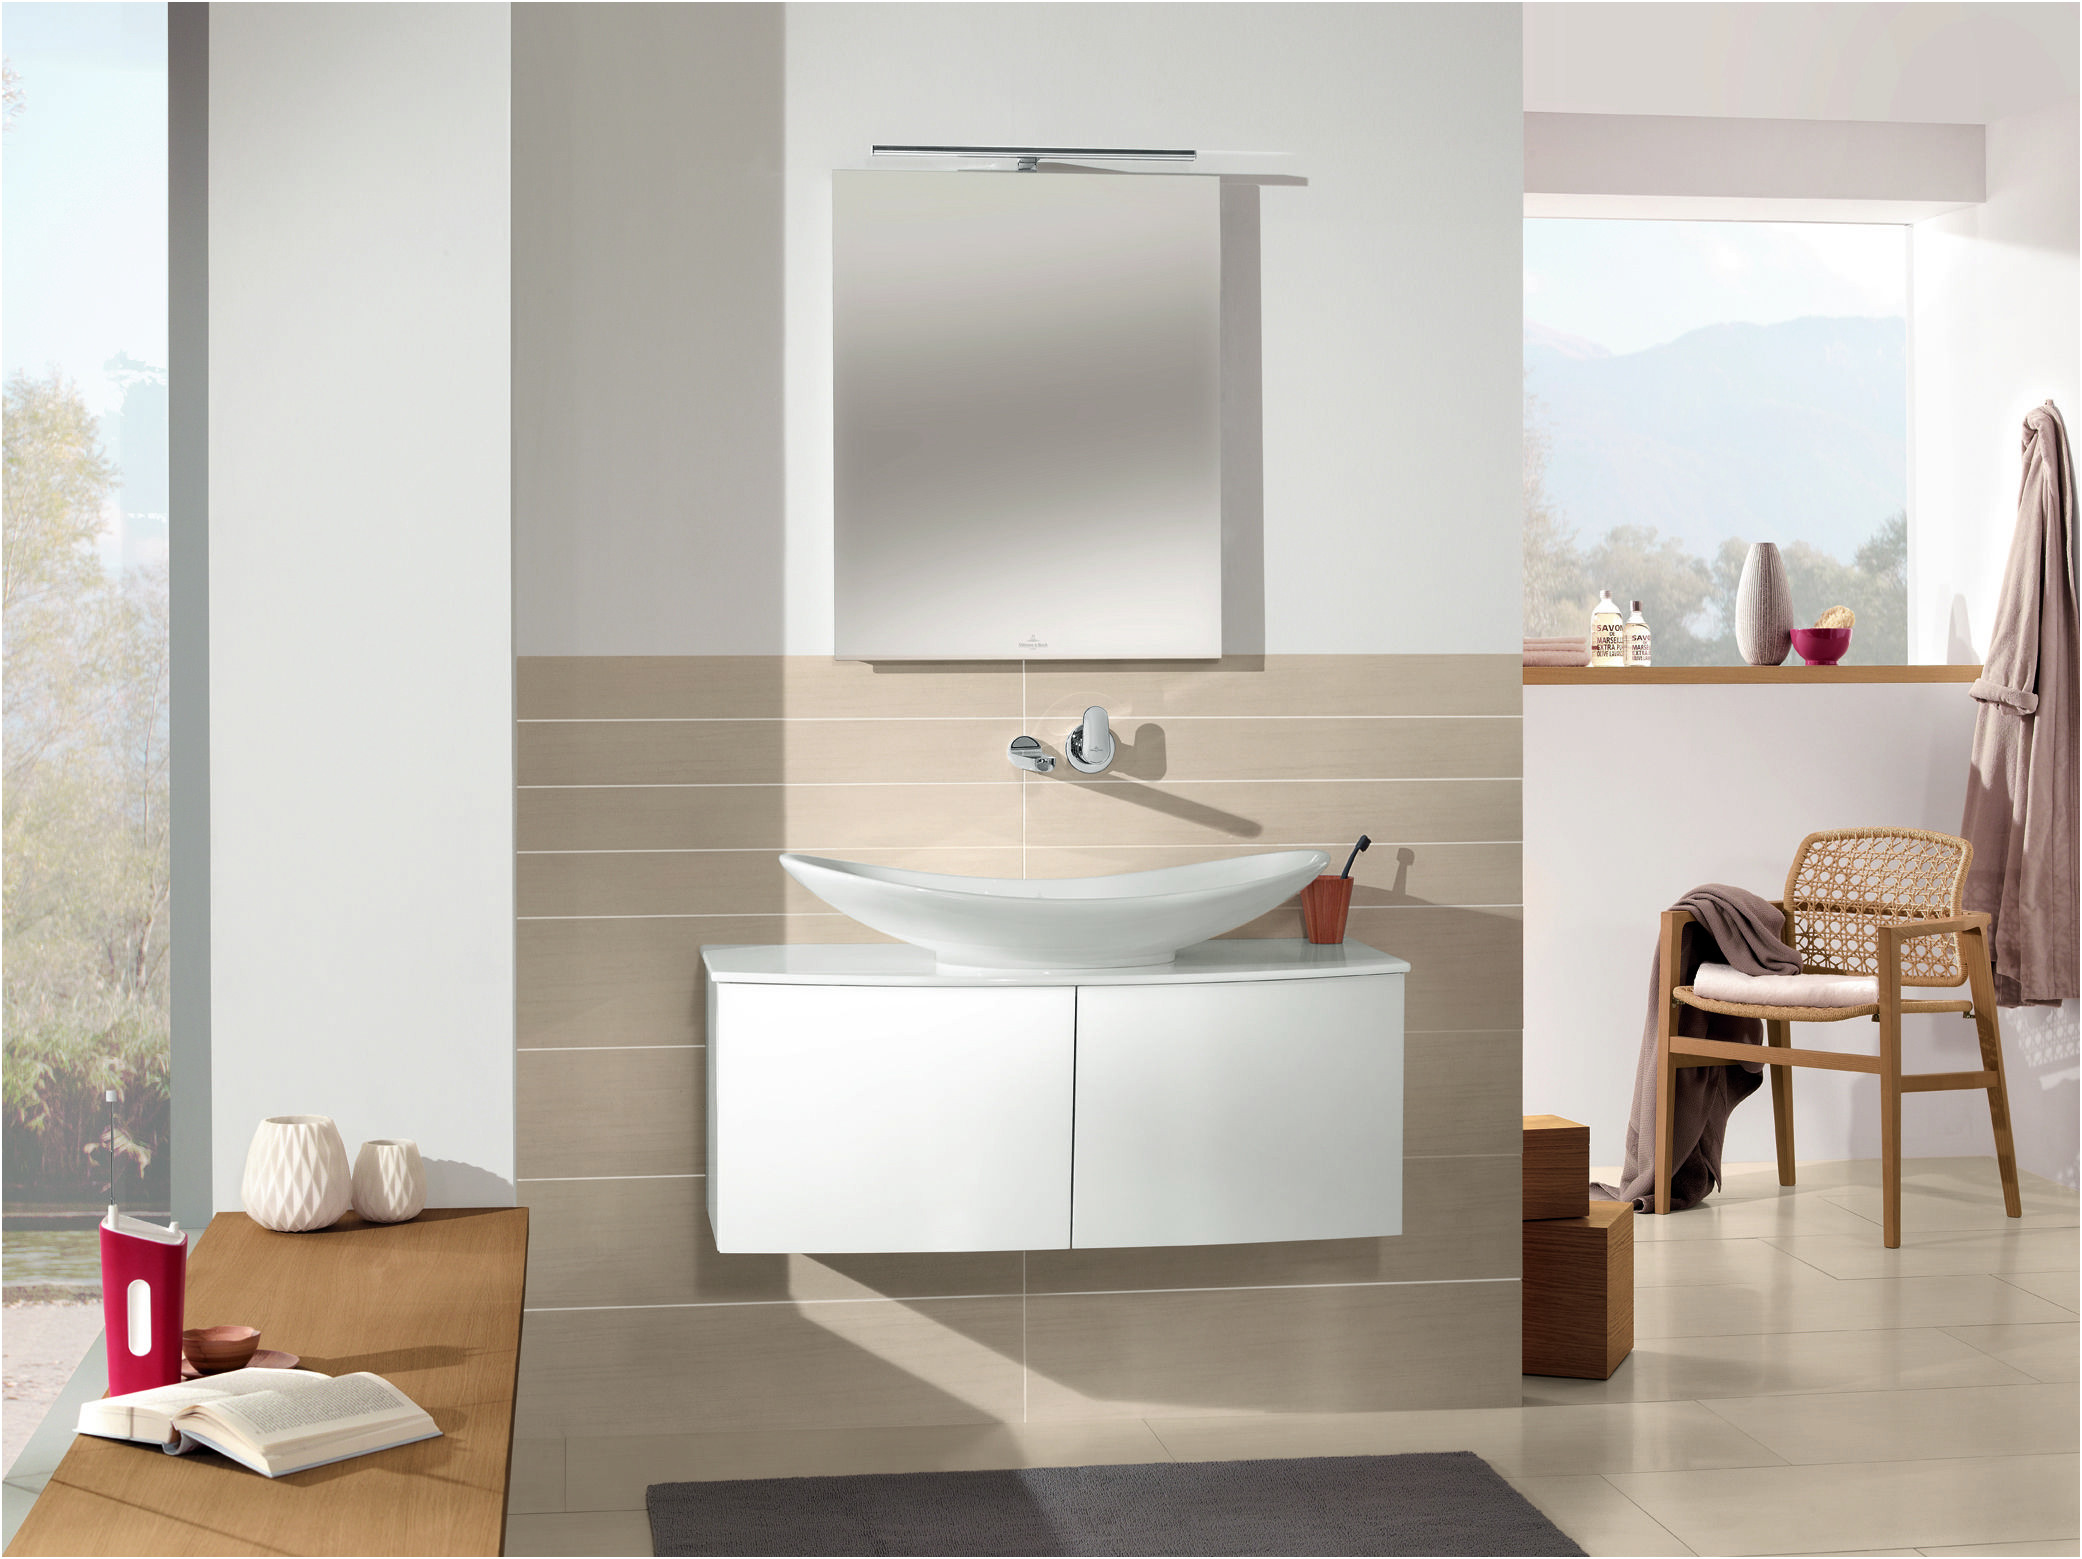 Villeroy and Boch Bathroom Mirrors Awesome the My Nature Bath Collection From Villeroy & Boch is Characterised